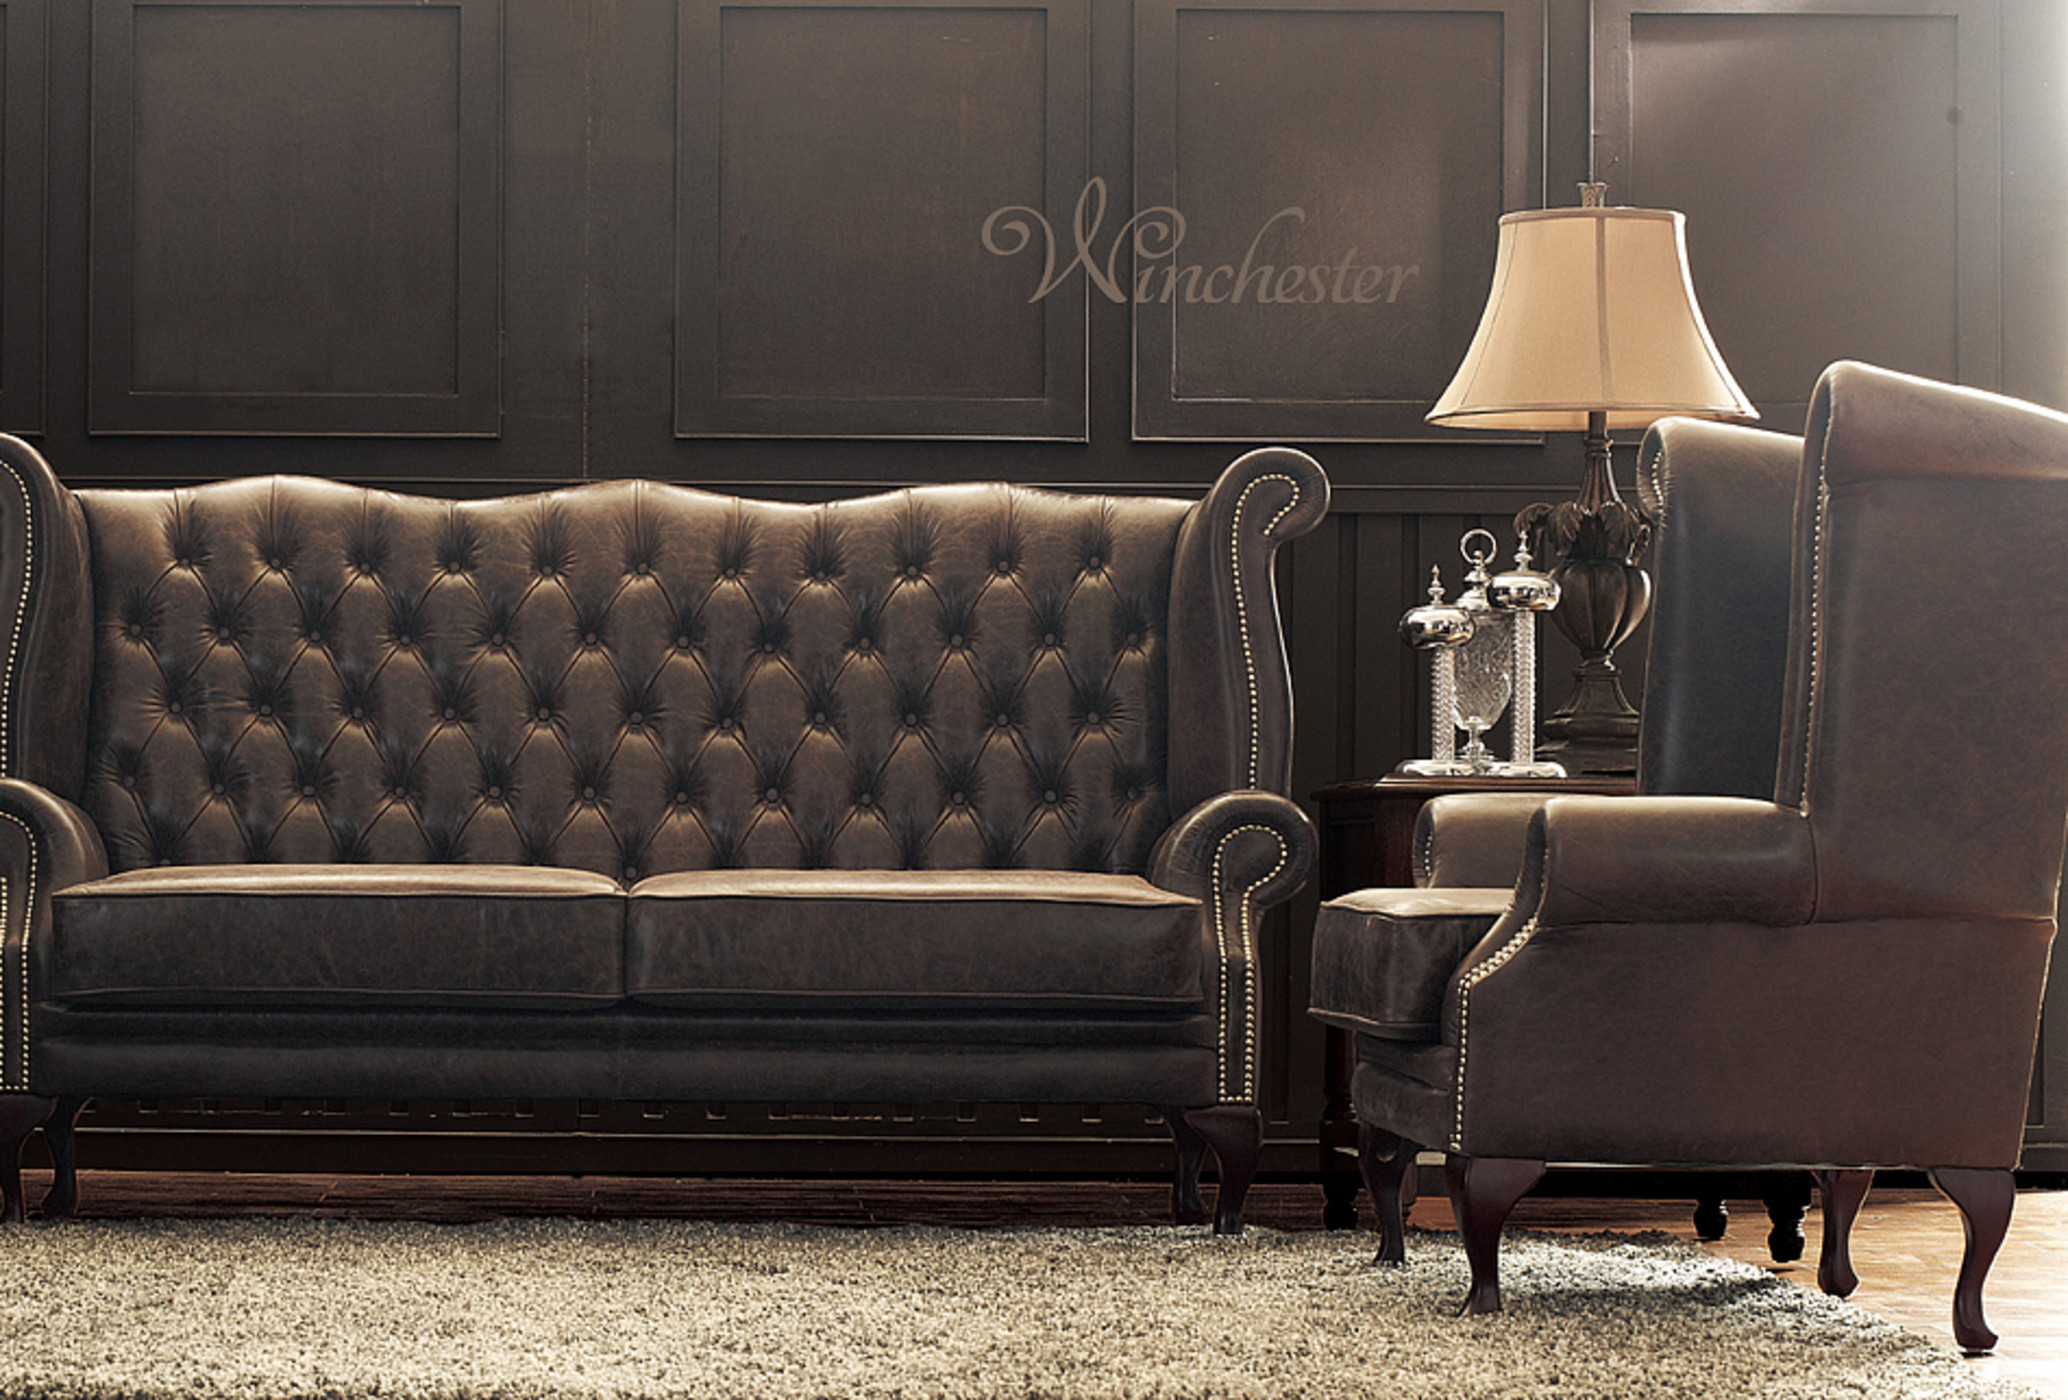 Incroyable There Are Many People Looking For Traditional Leather Sofas And For  Interior Designers Who Want A Traditional English Theme Then Sourcing Of  Furniture Is ...